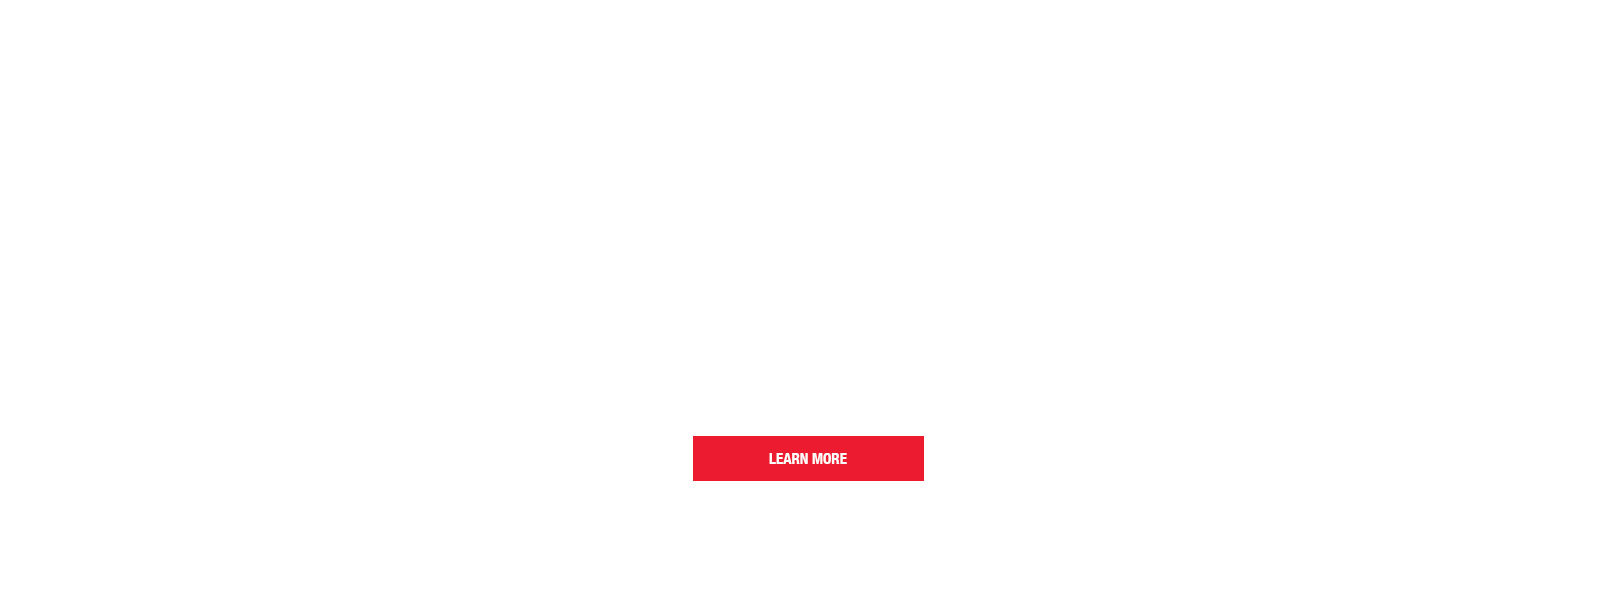 Introducing the Travel Trainr: 4 workout tools in 1